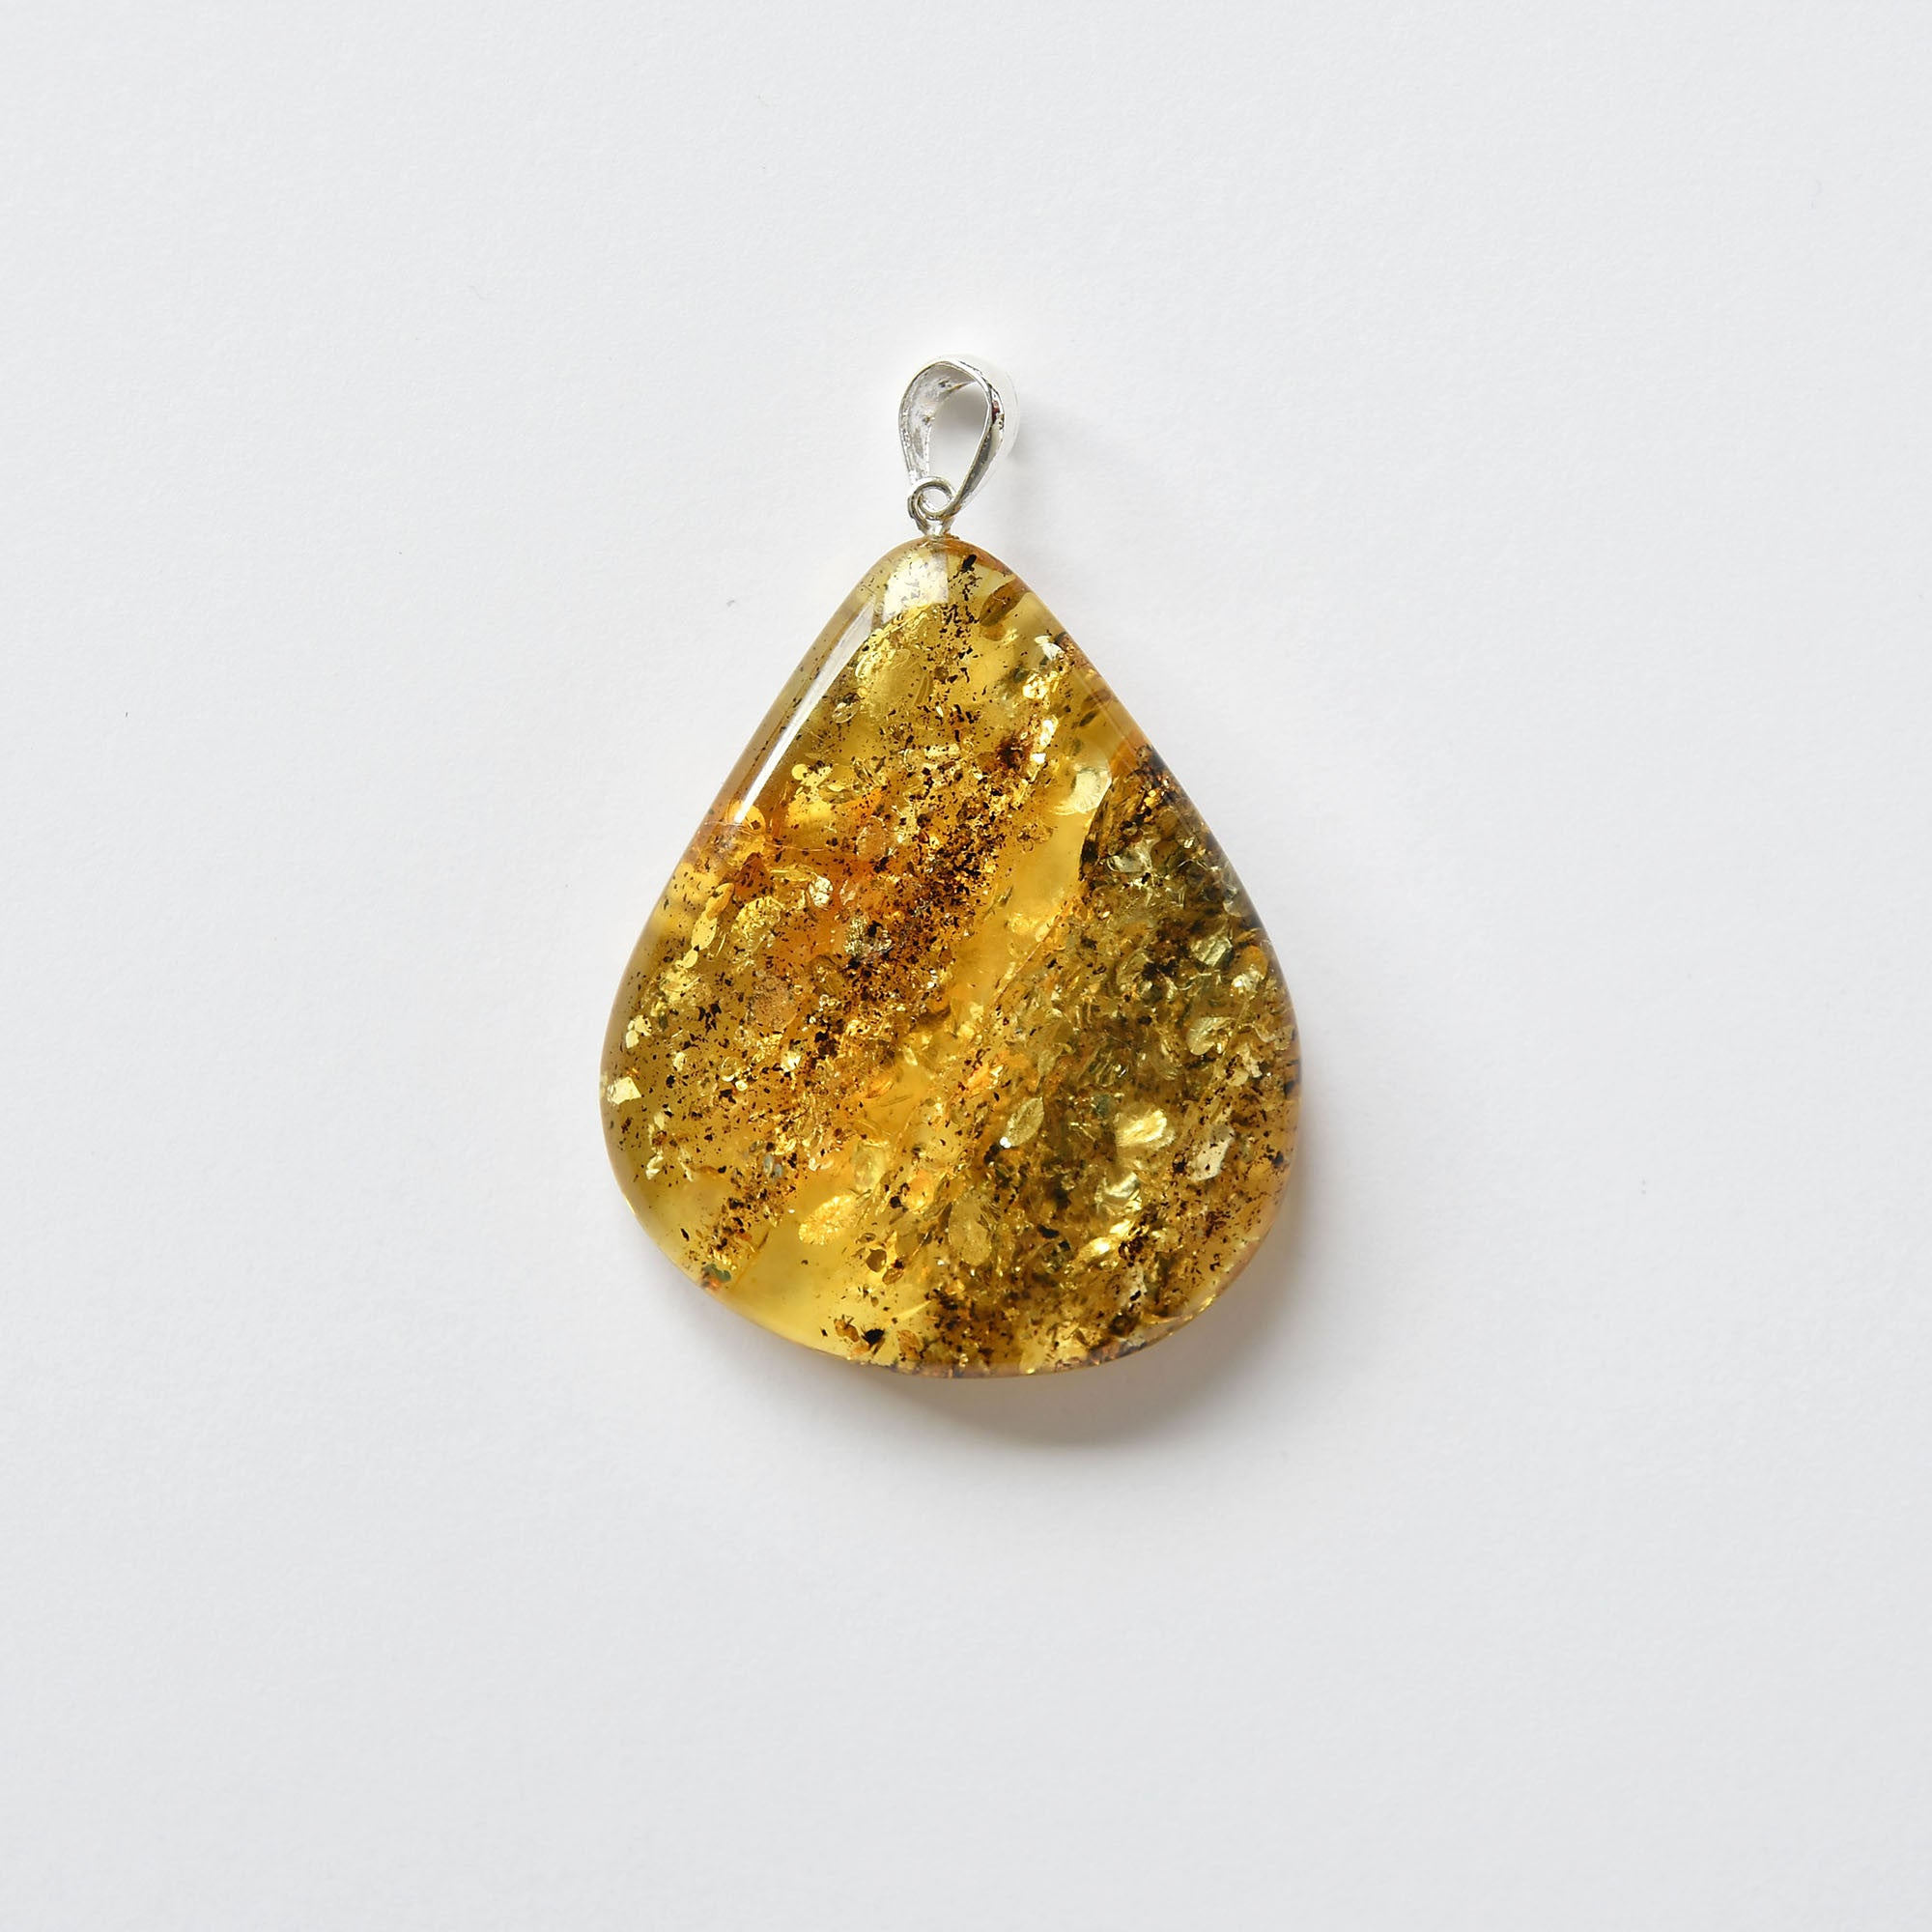 Drop shaped amber pendant of yellow-green pattern